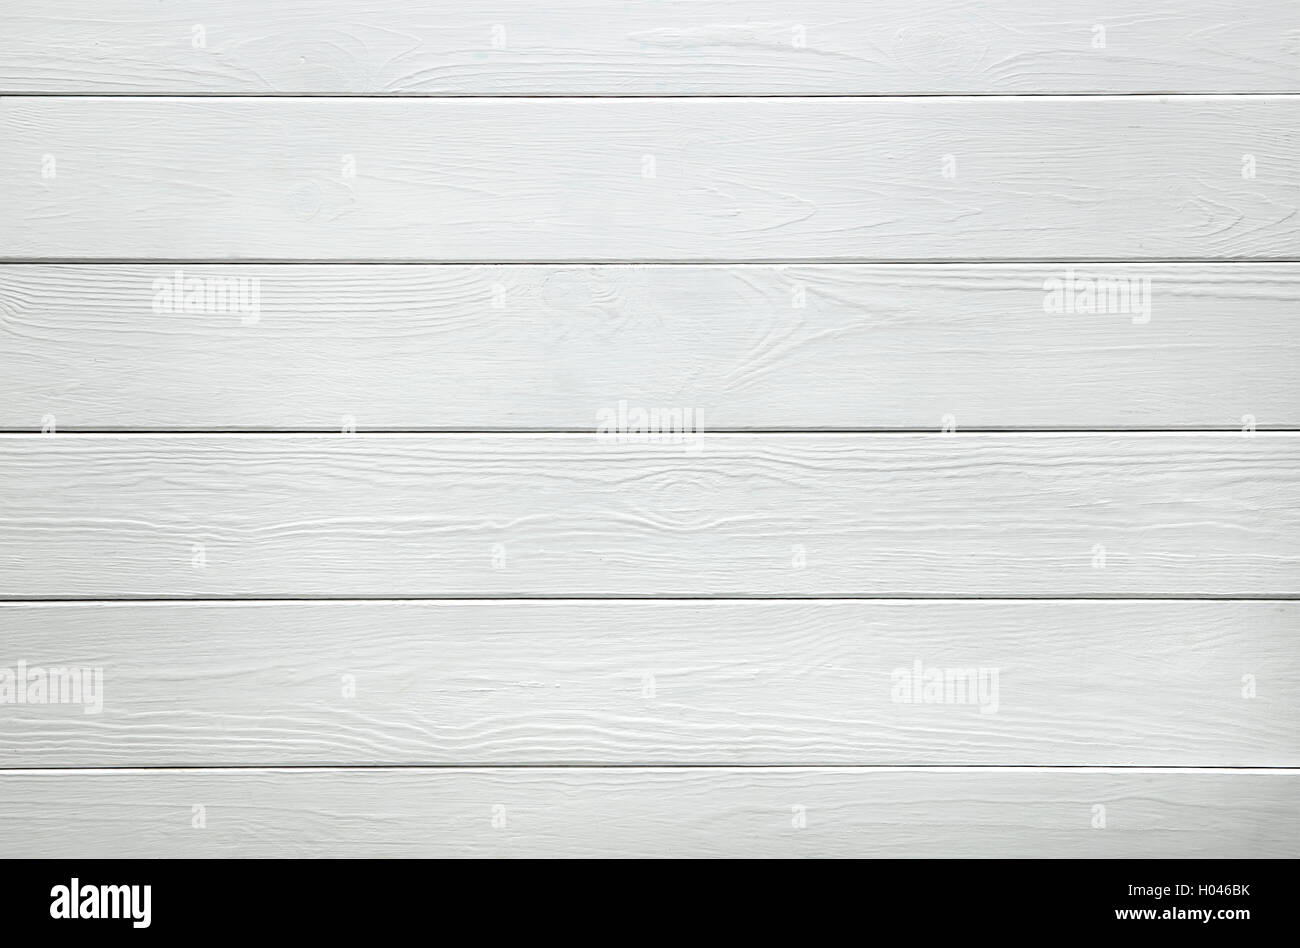 White wood texture of planks - Stock Image